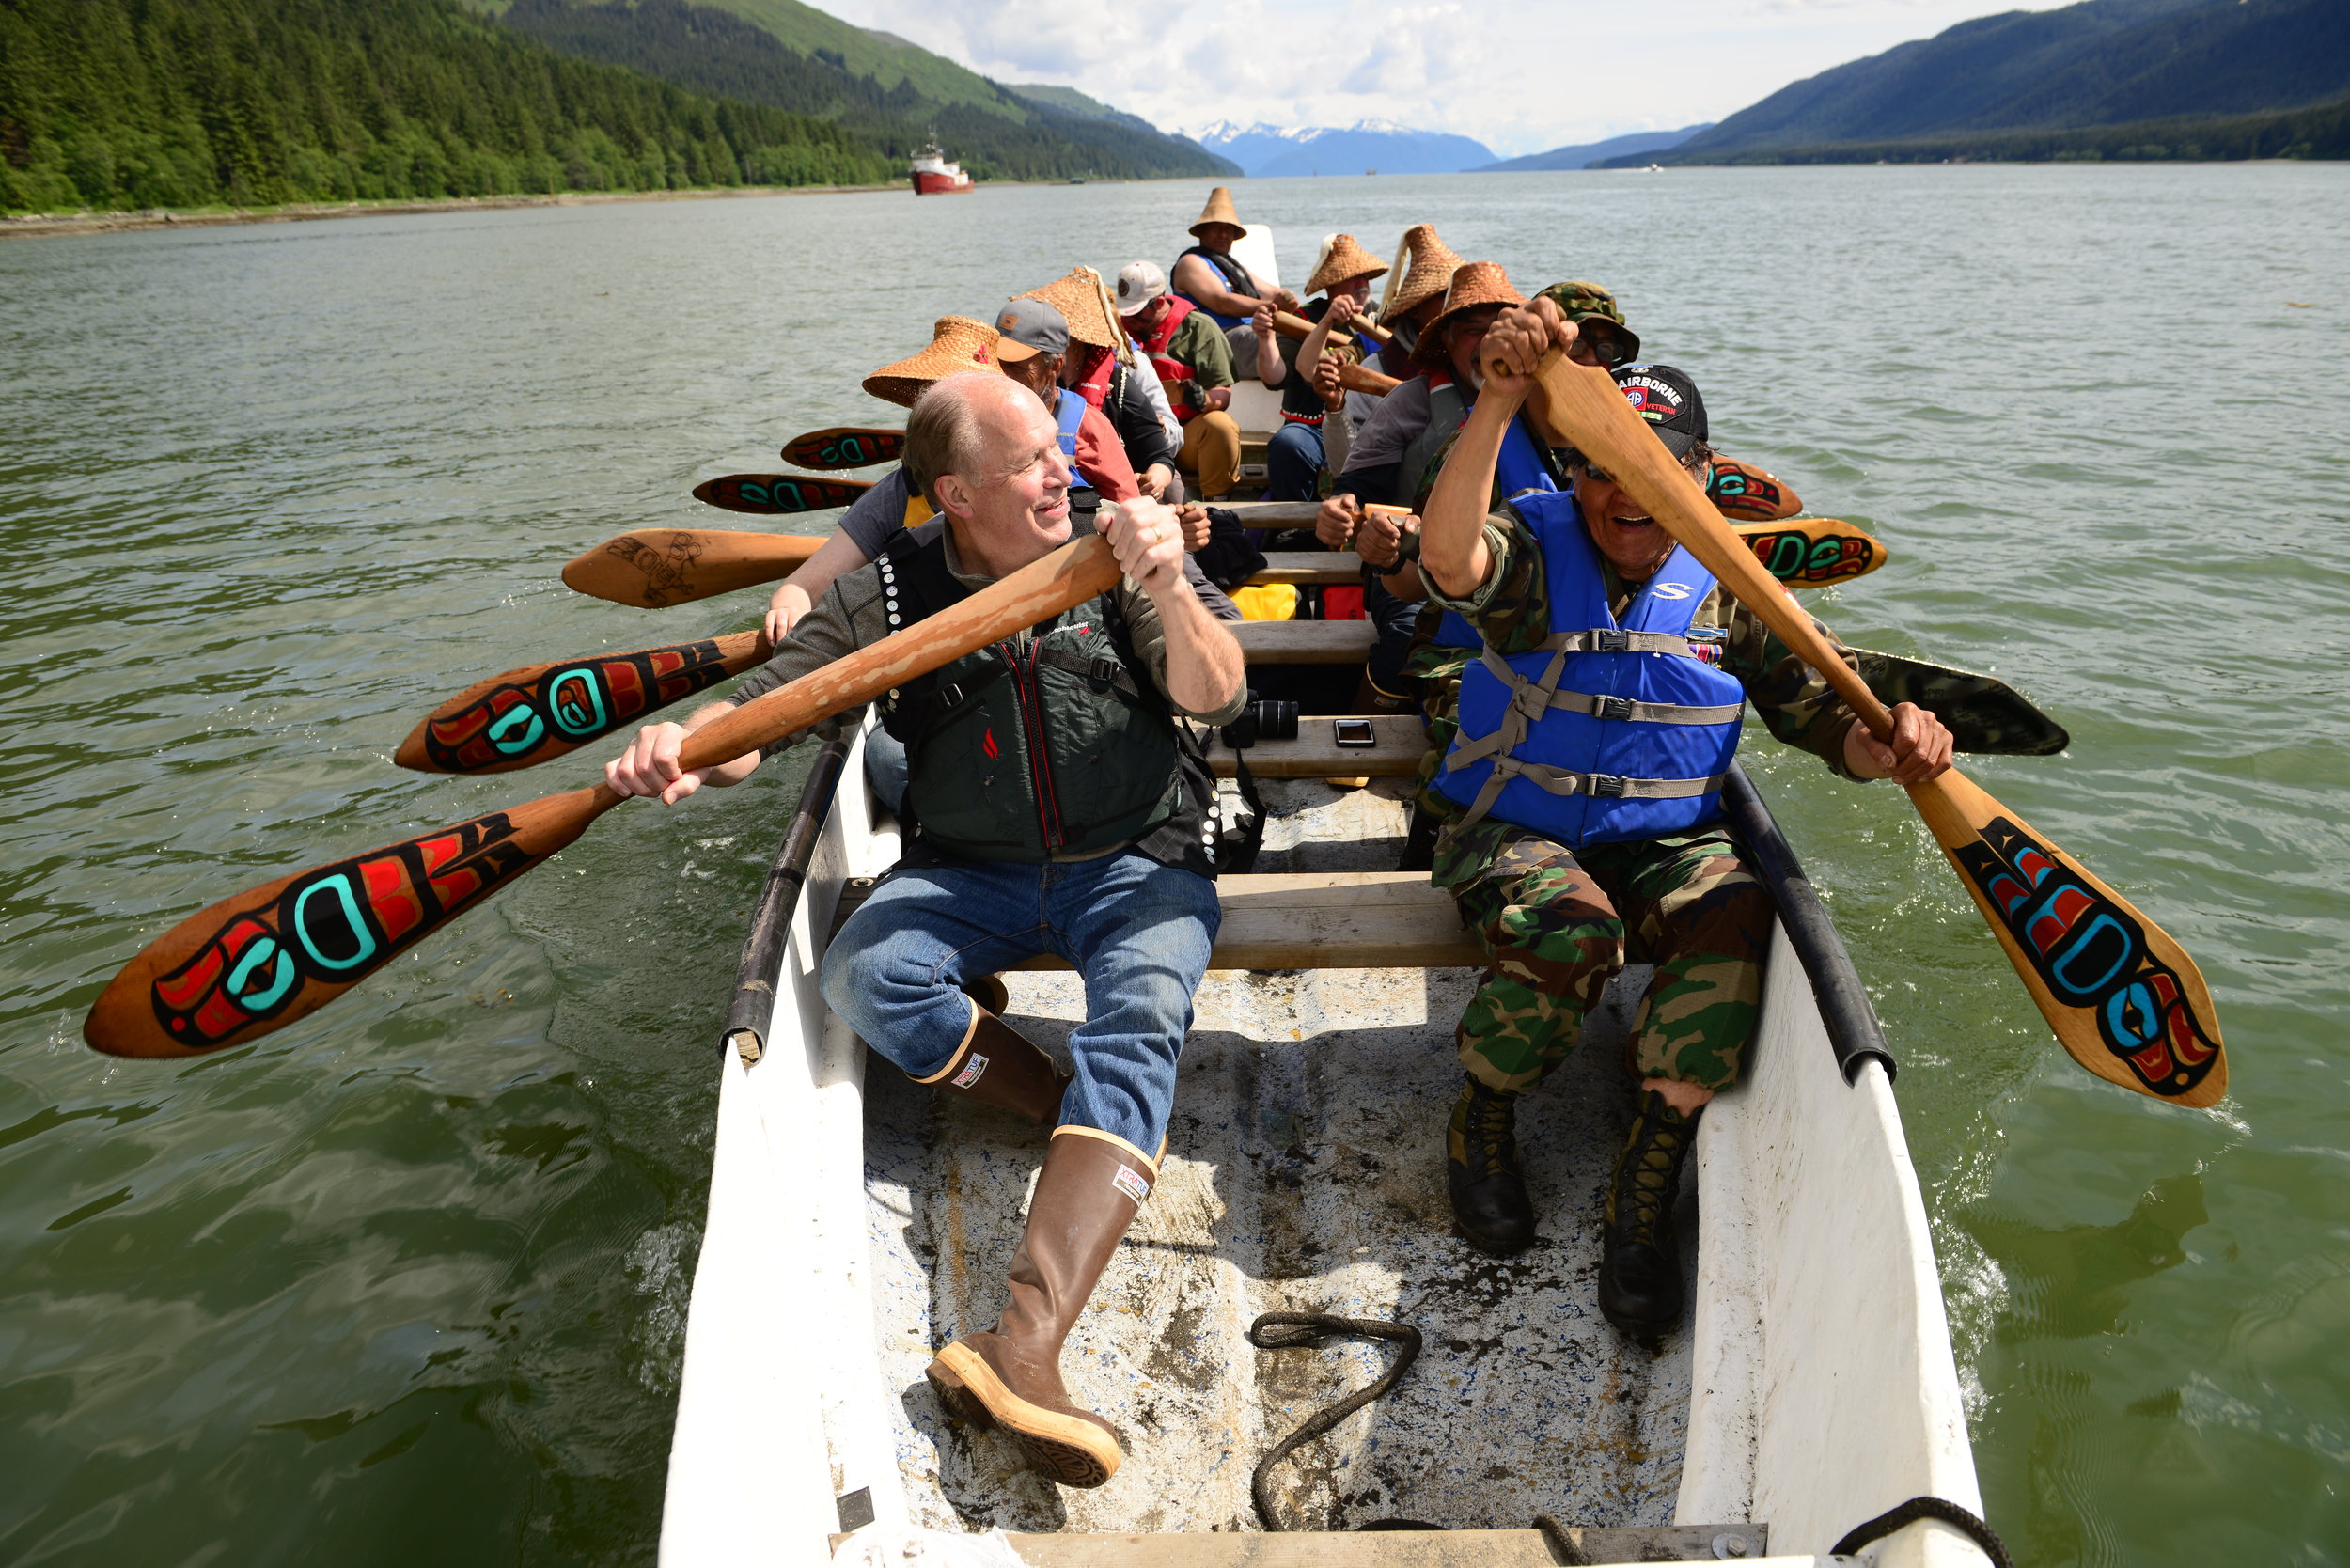 Governor Walker joins the Veterans Canoe for the last leg of the paddle to Juneau that kicks off Celebration, Southeast Alaska's biennial celebration of Tlingit, Haida, and Tsimshian culture. June 6, 2018.